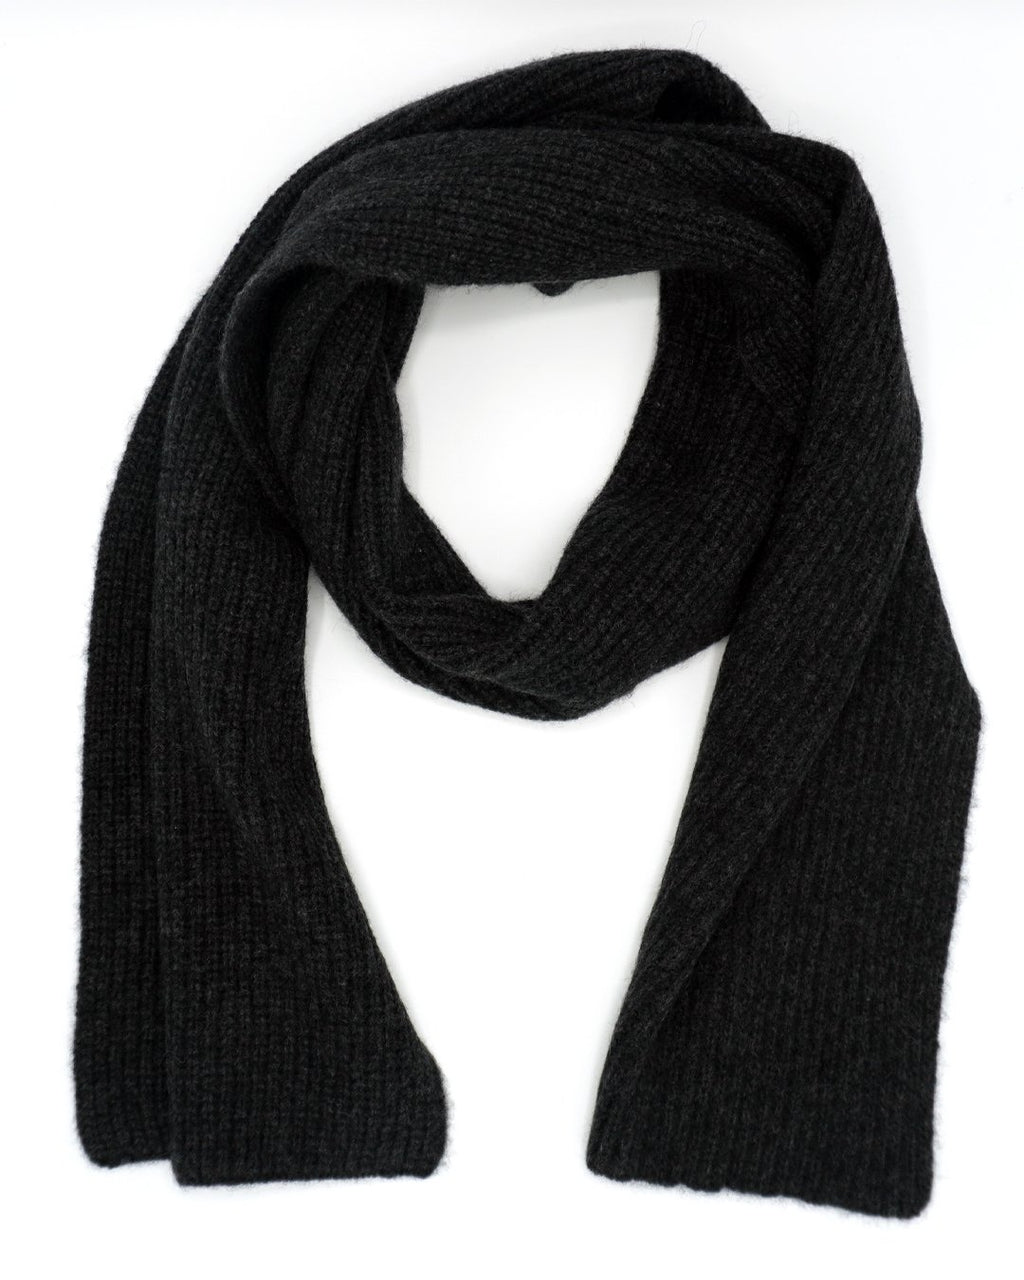 2 ply Charcoal Grey Cashmere Scarf